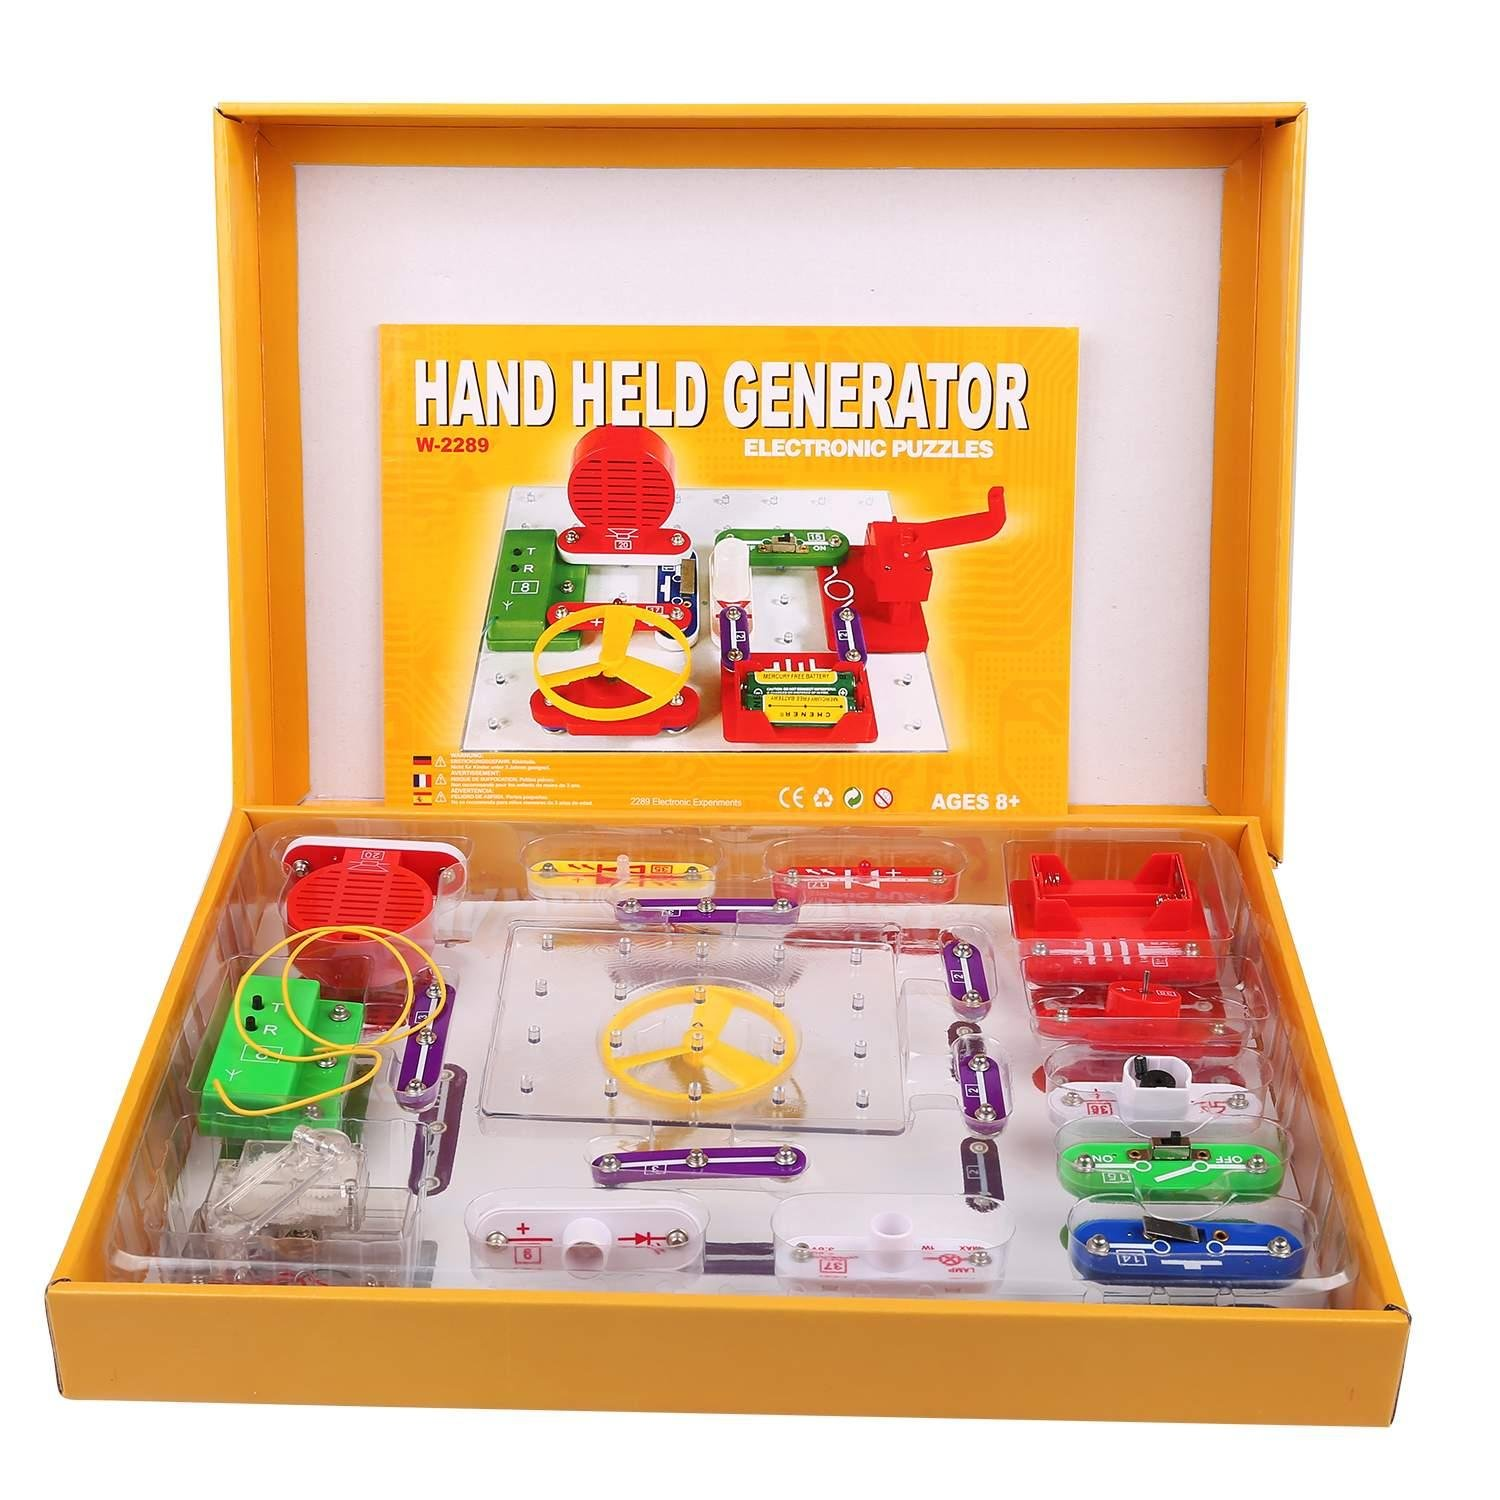 Asatr 2289 Electronics Discovery Kit Educational Amazoncom Snap Circuits Sound Toys Science Toy Diy Clothing